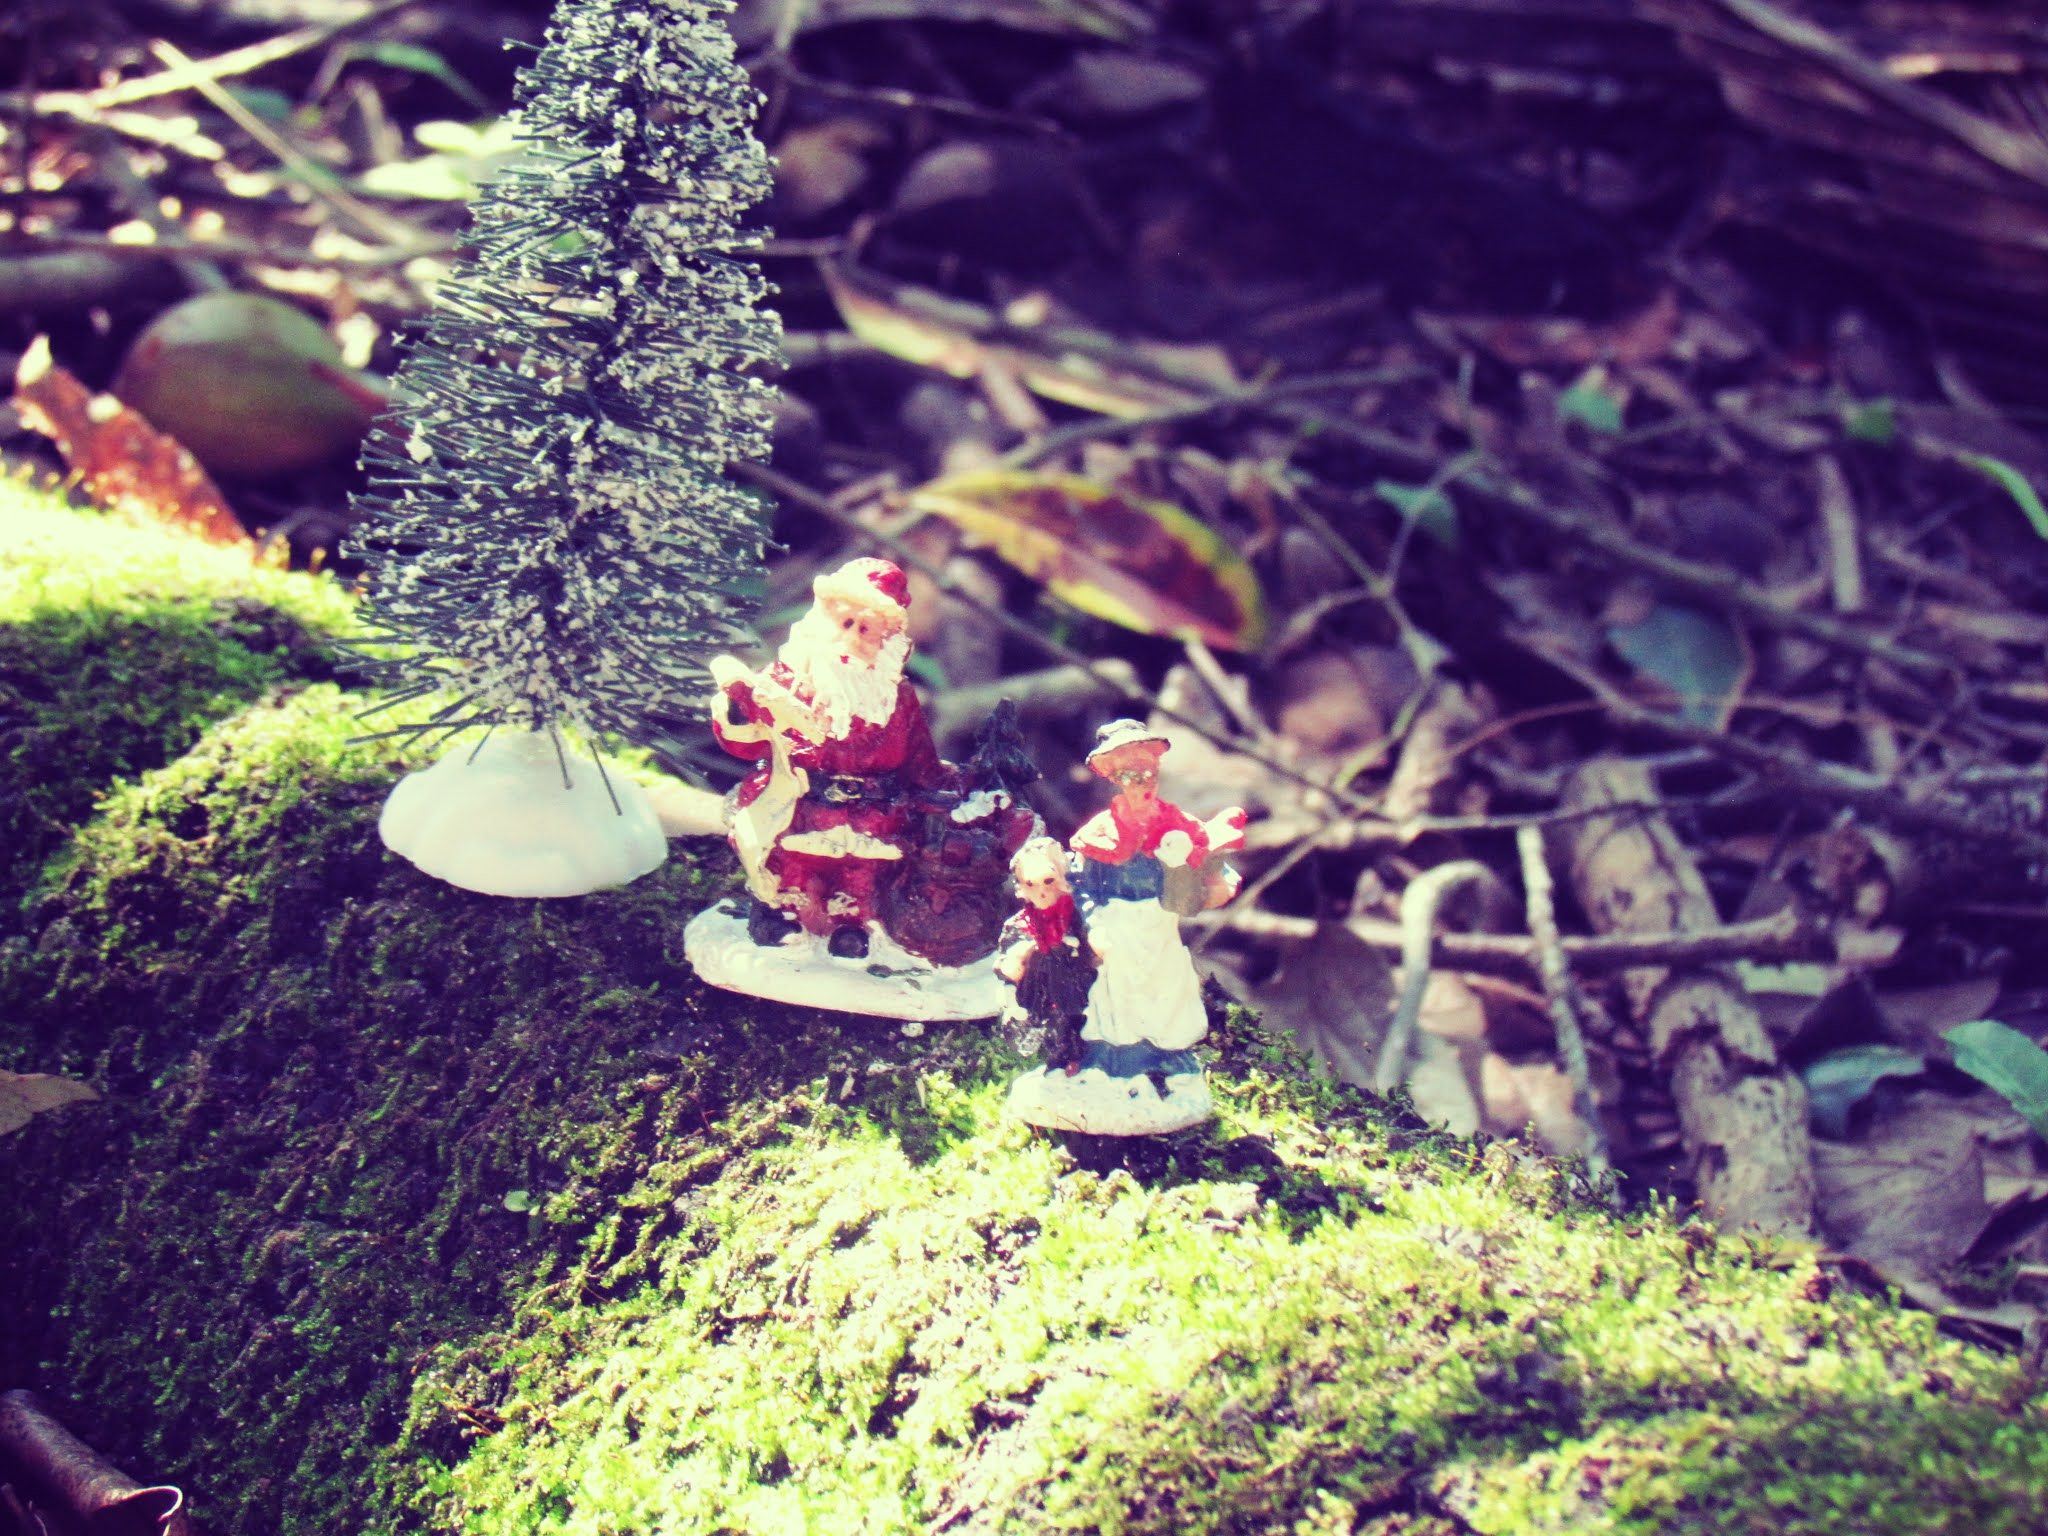 A holiday nature altar display with Santa Clause and Mrs. Clause figurines in mother nature on a bayou boardwalk in Florida landscape